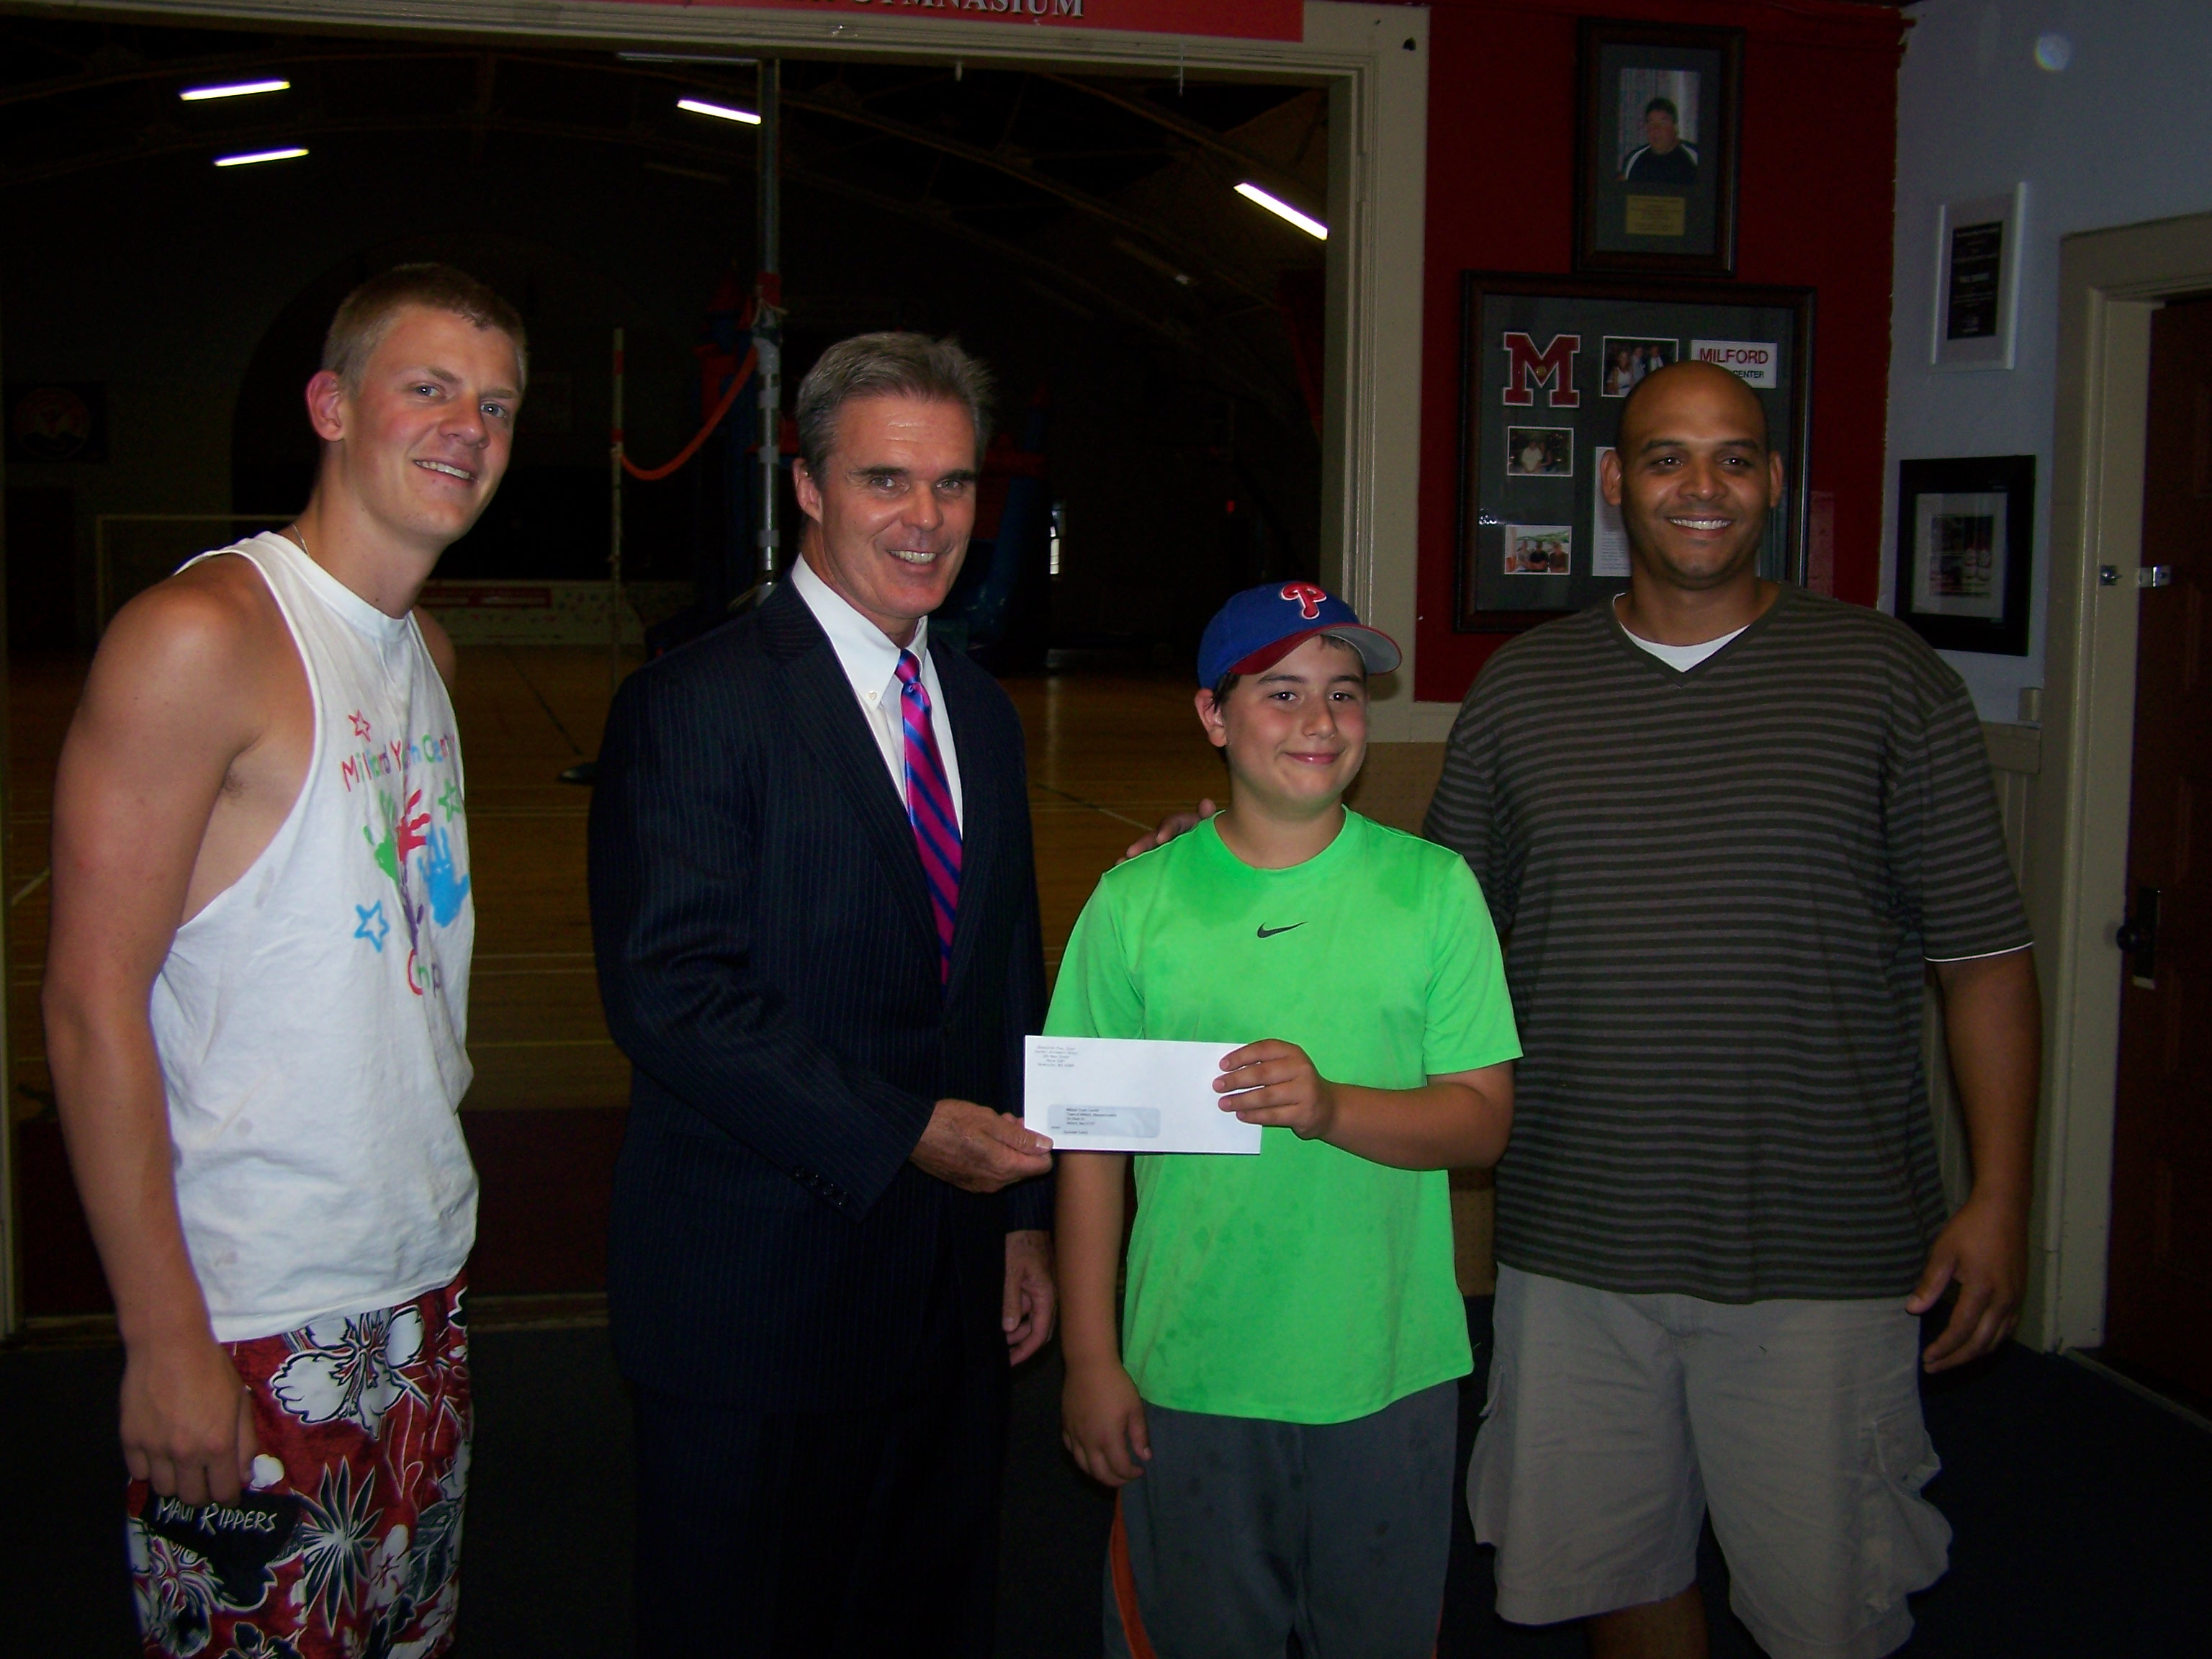 DA Early stands with Dan Seaver, Nick Wimette and Sidney De Jesus of the Milford Youth Center as he presents a check.